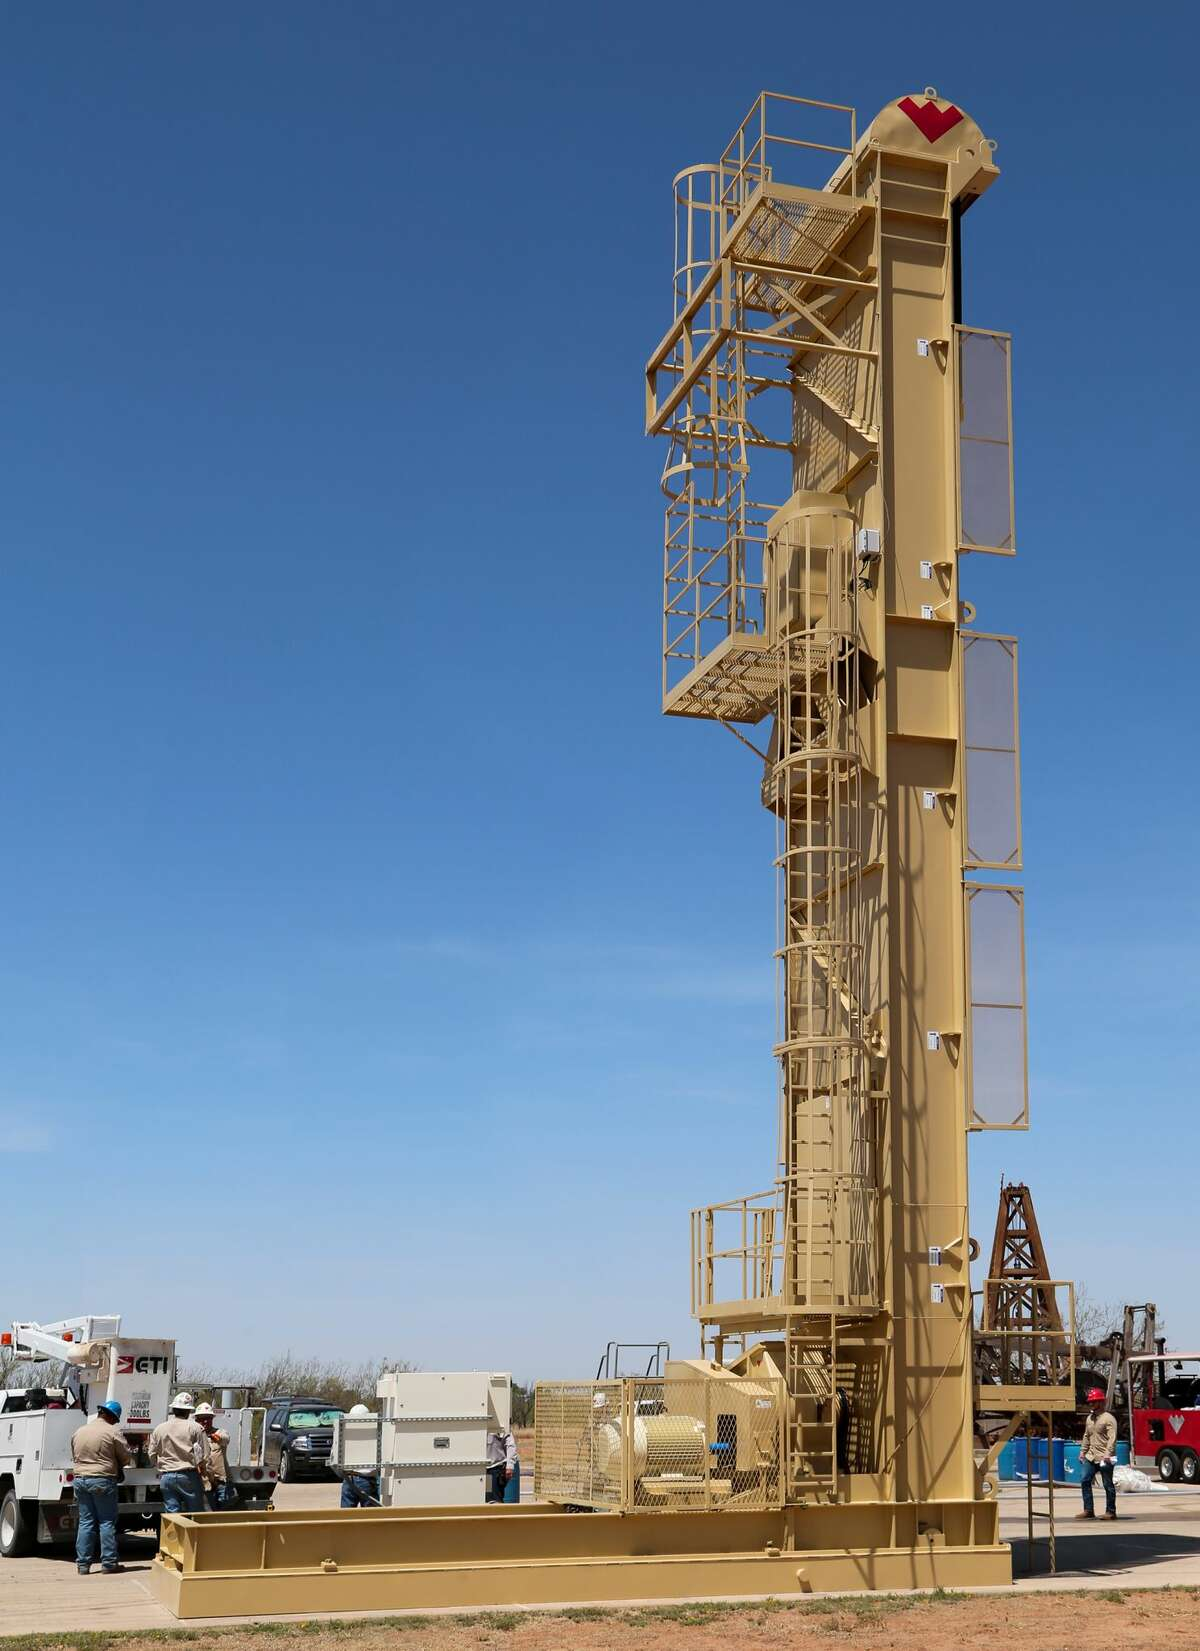 The Rotaflex long-stroke pumping unit towered over the museum in the west parking lot. It was designed to eliminate the need for intermediate-lift methods and allows producers to optimize productivity with its longer stroke, more complete barrel fillage and less wear on surface and downhole equipment.